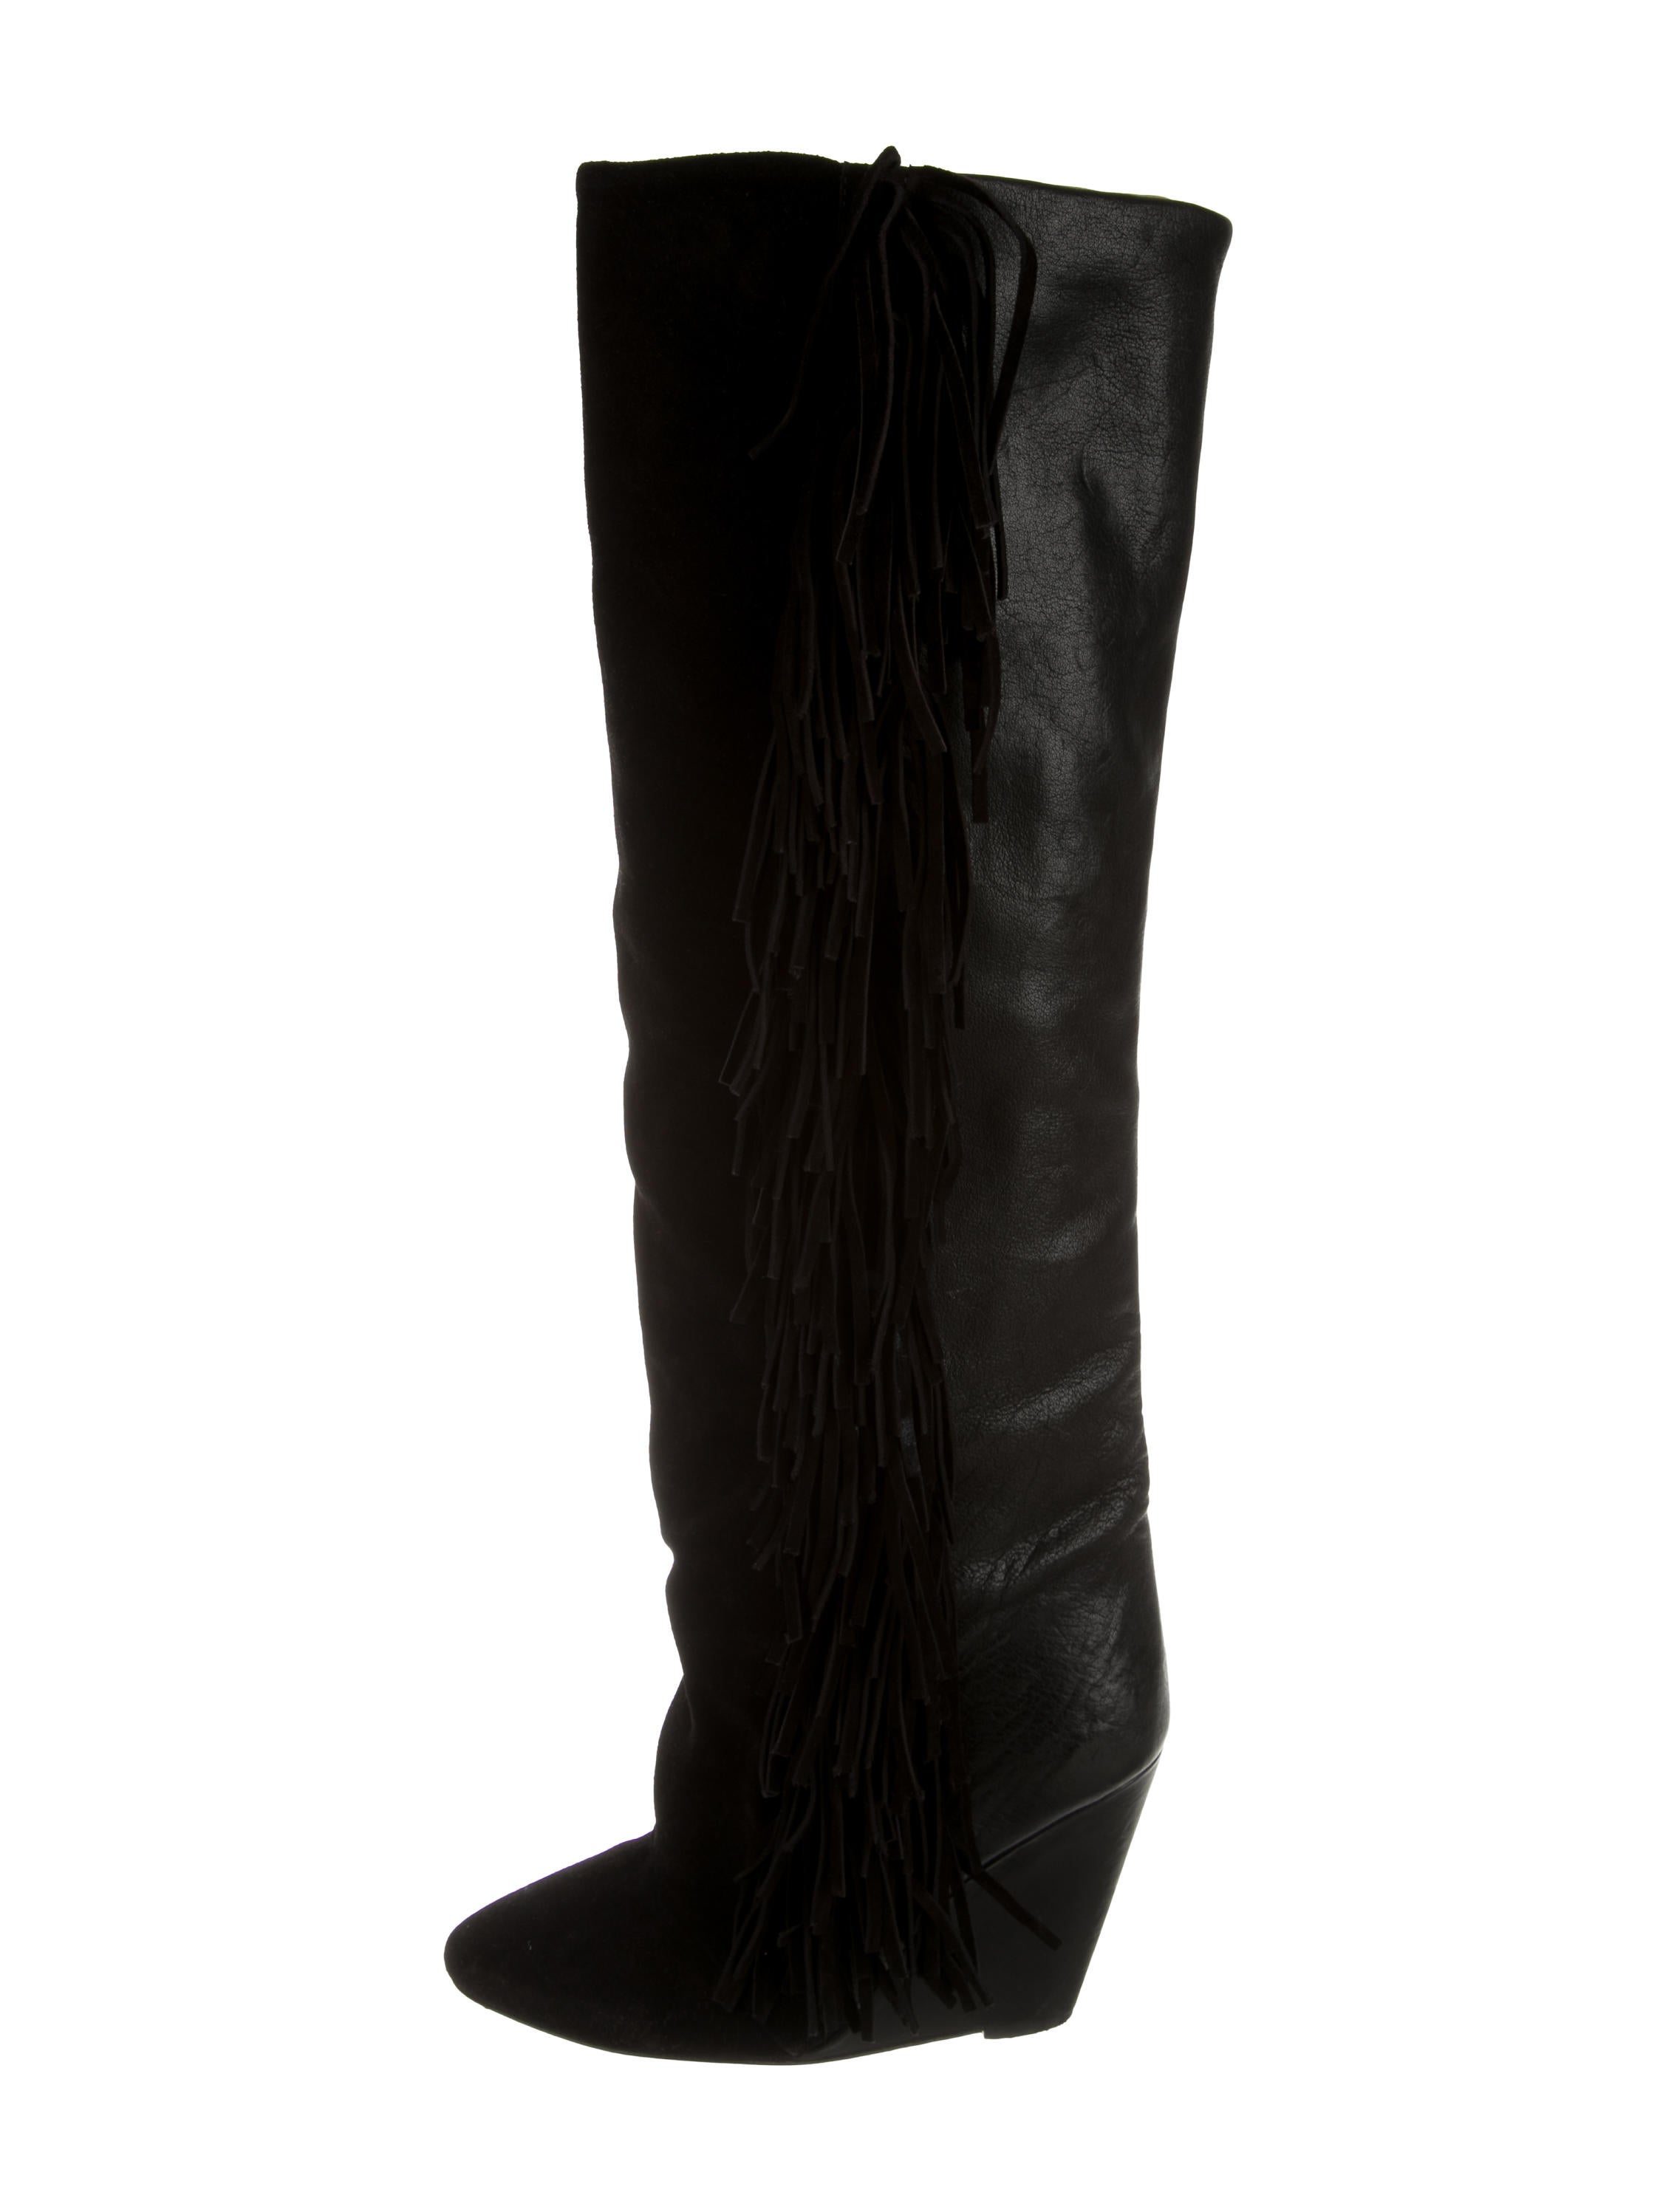 201 toile marant fringe embellished wedge boots